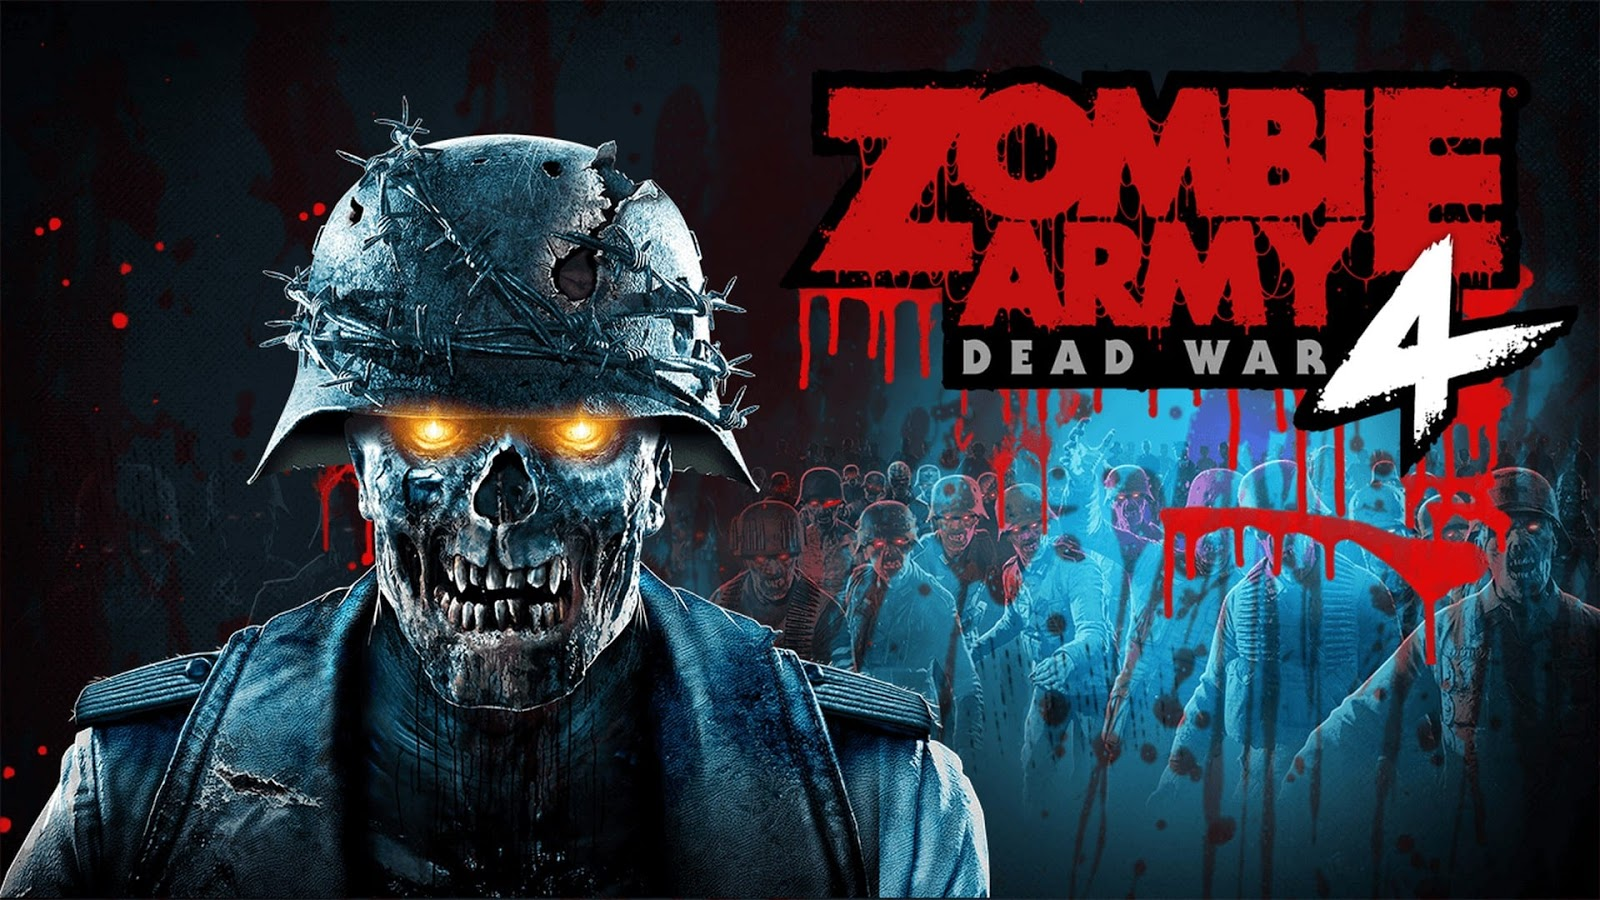 The Zombie Army 4 Dead War review is a fun but lacking experience